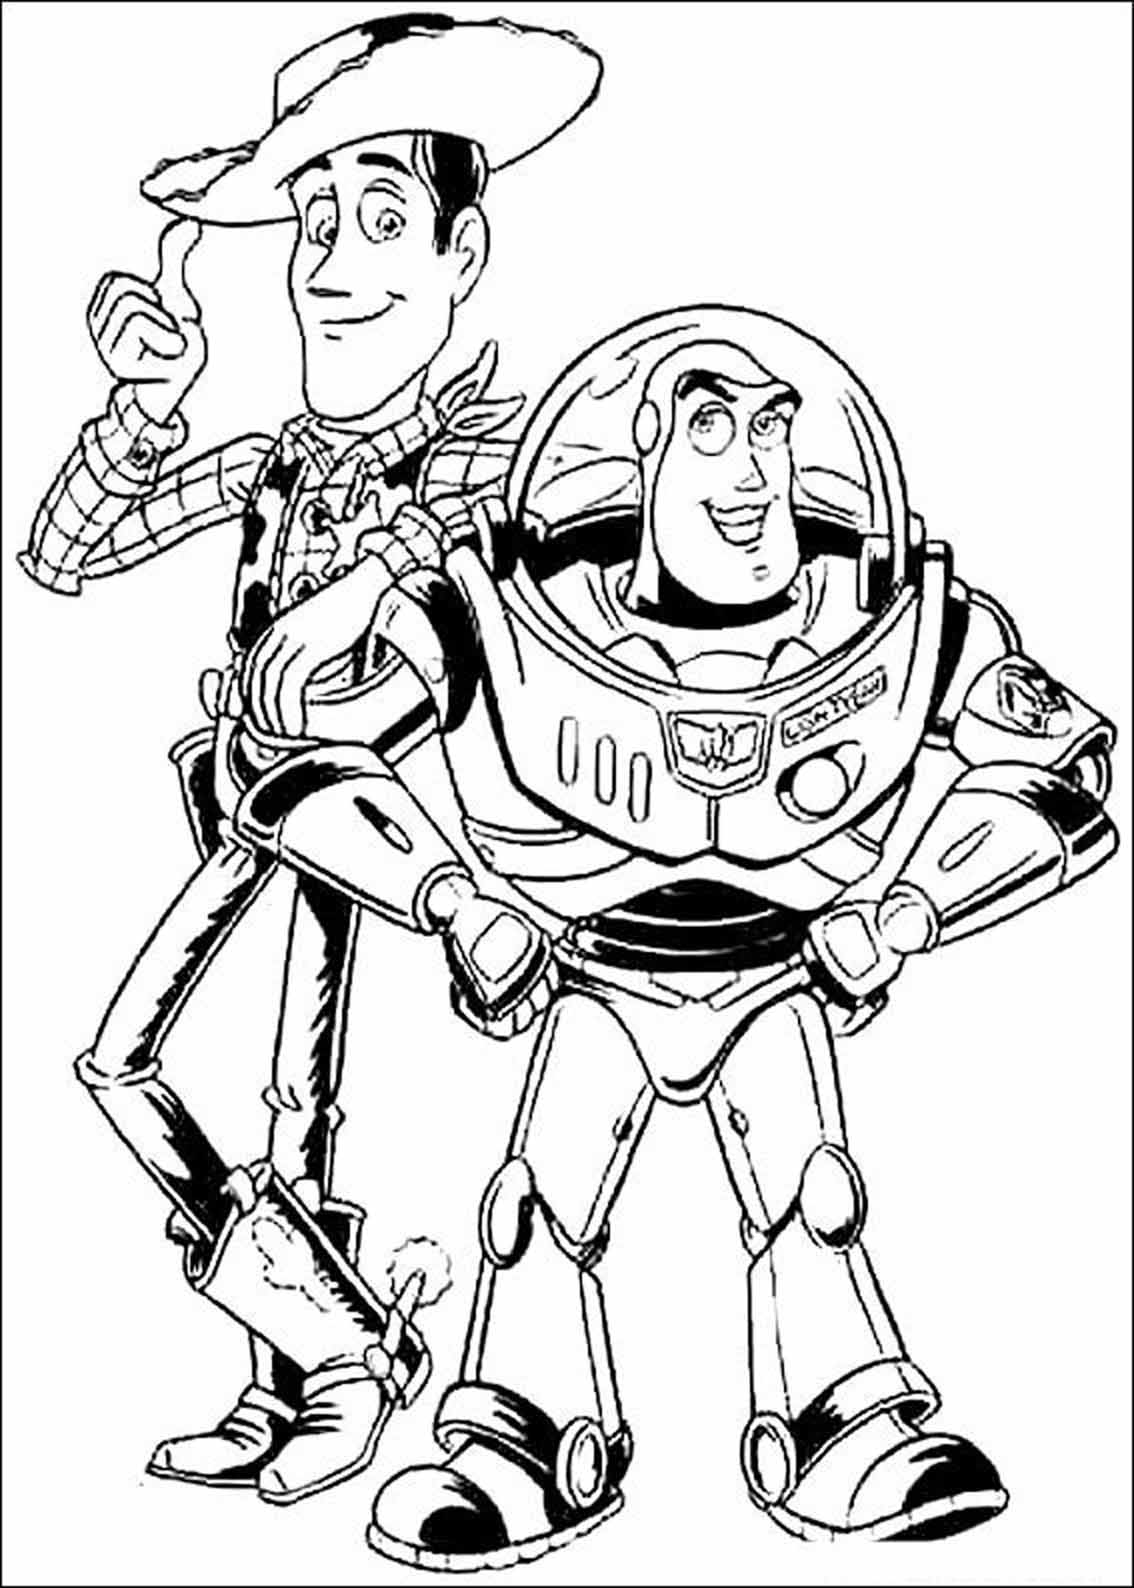 Woody and Buzz Lightyear - Toy Story Kids Coloring Pages